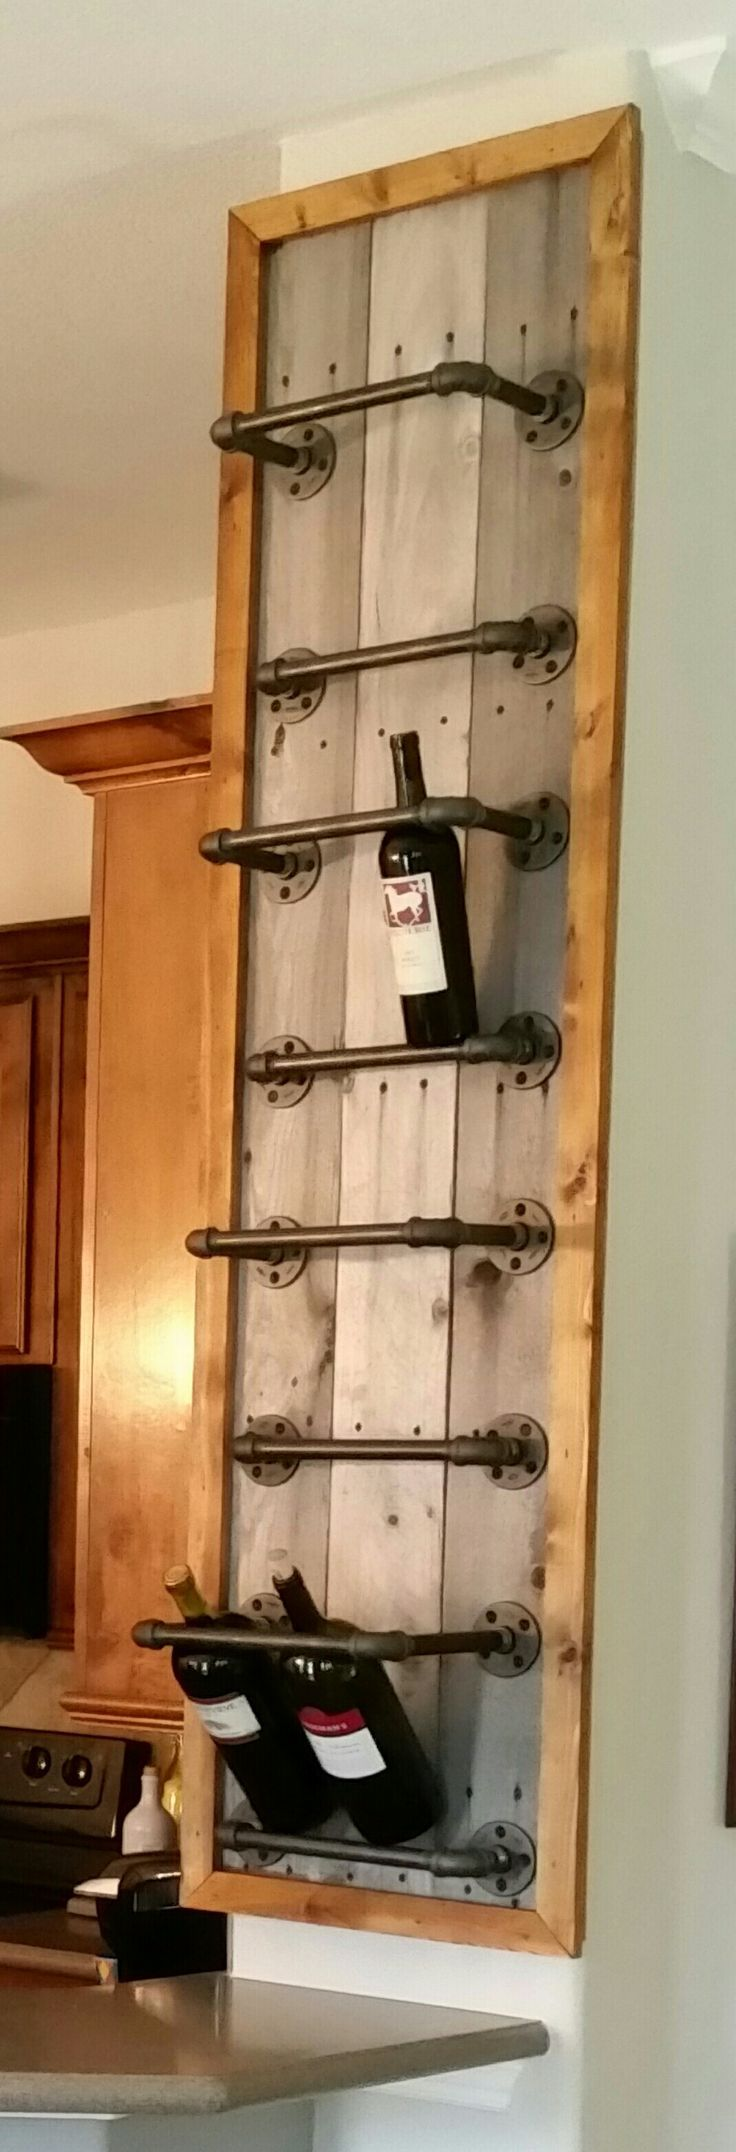 22 Diy Wine Rack Ideas Offer A